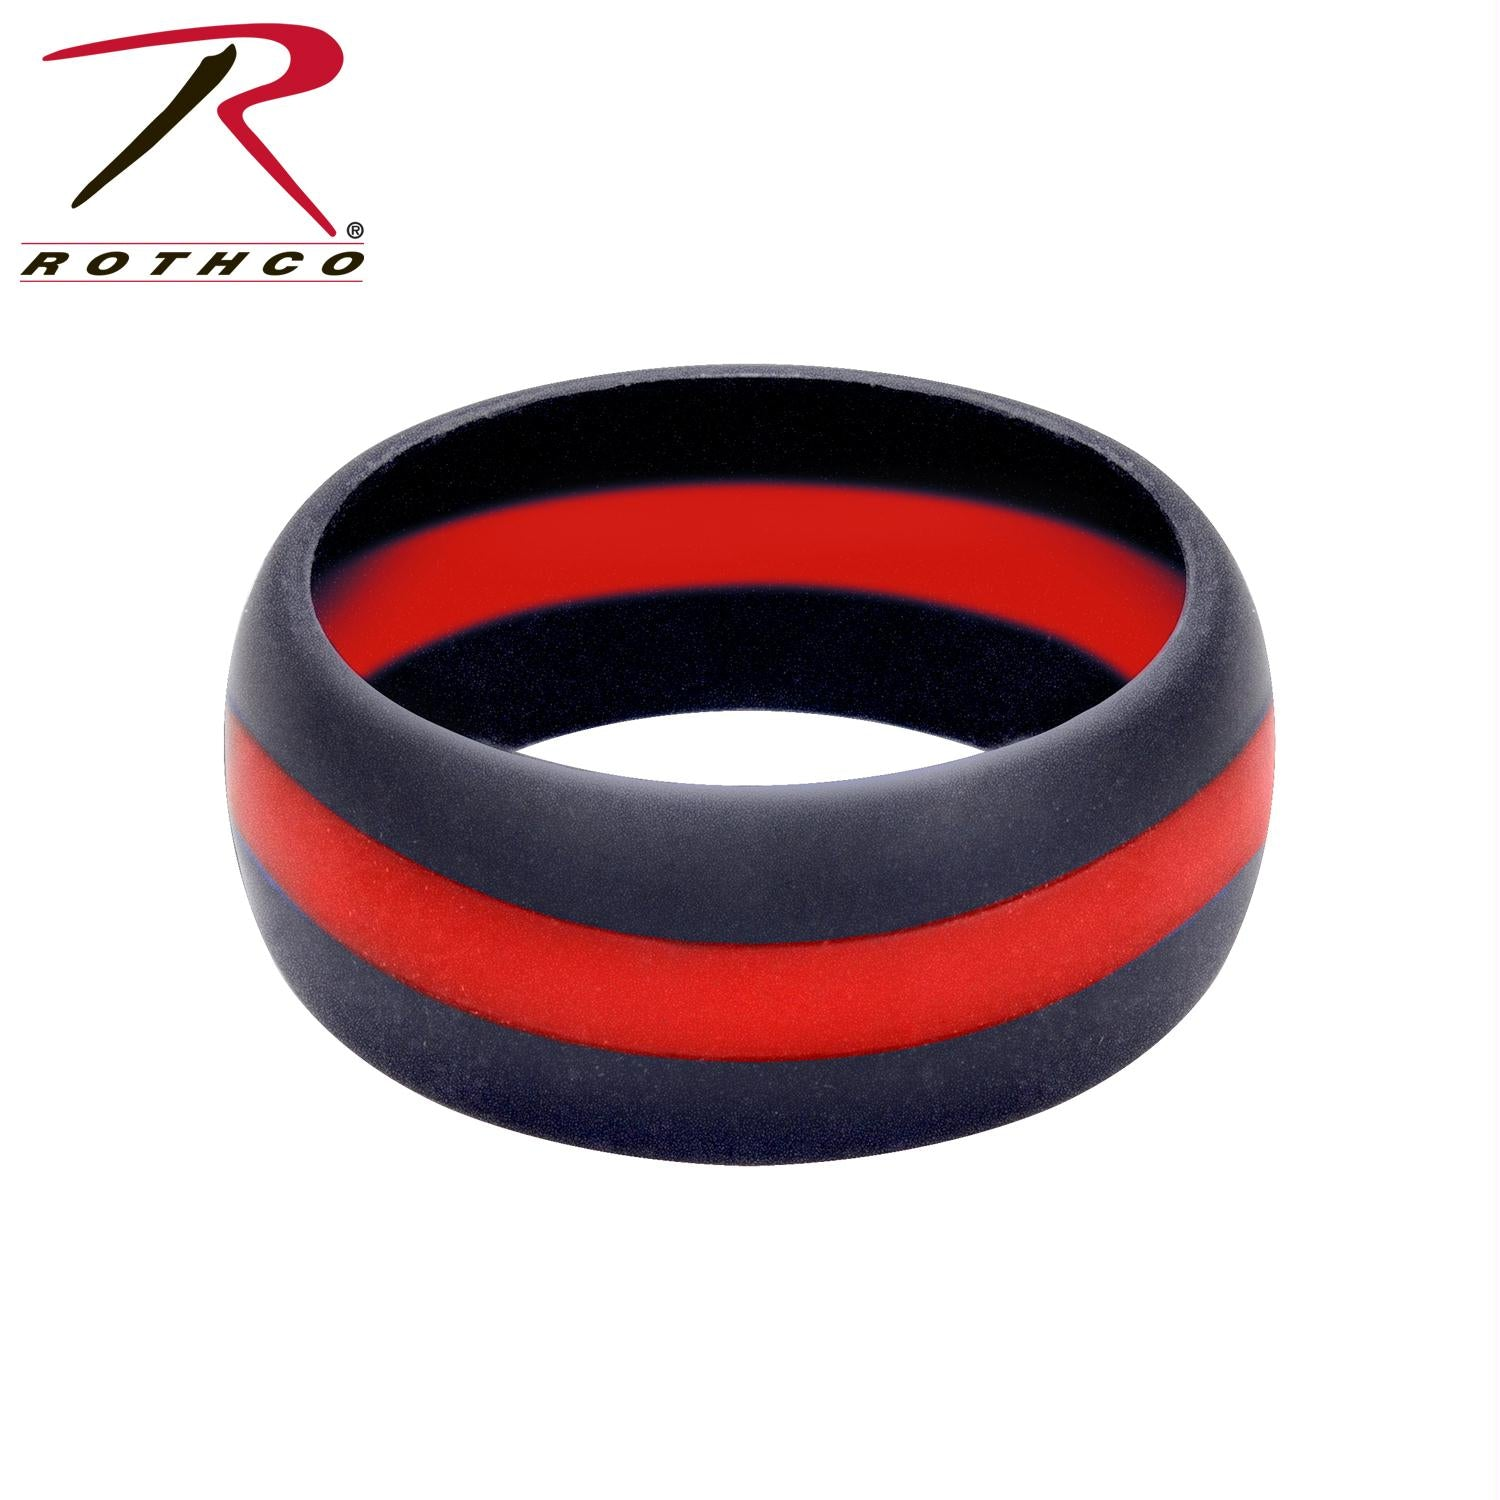 Rothco Thin Red Line Silicone Ring - 9